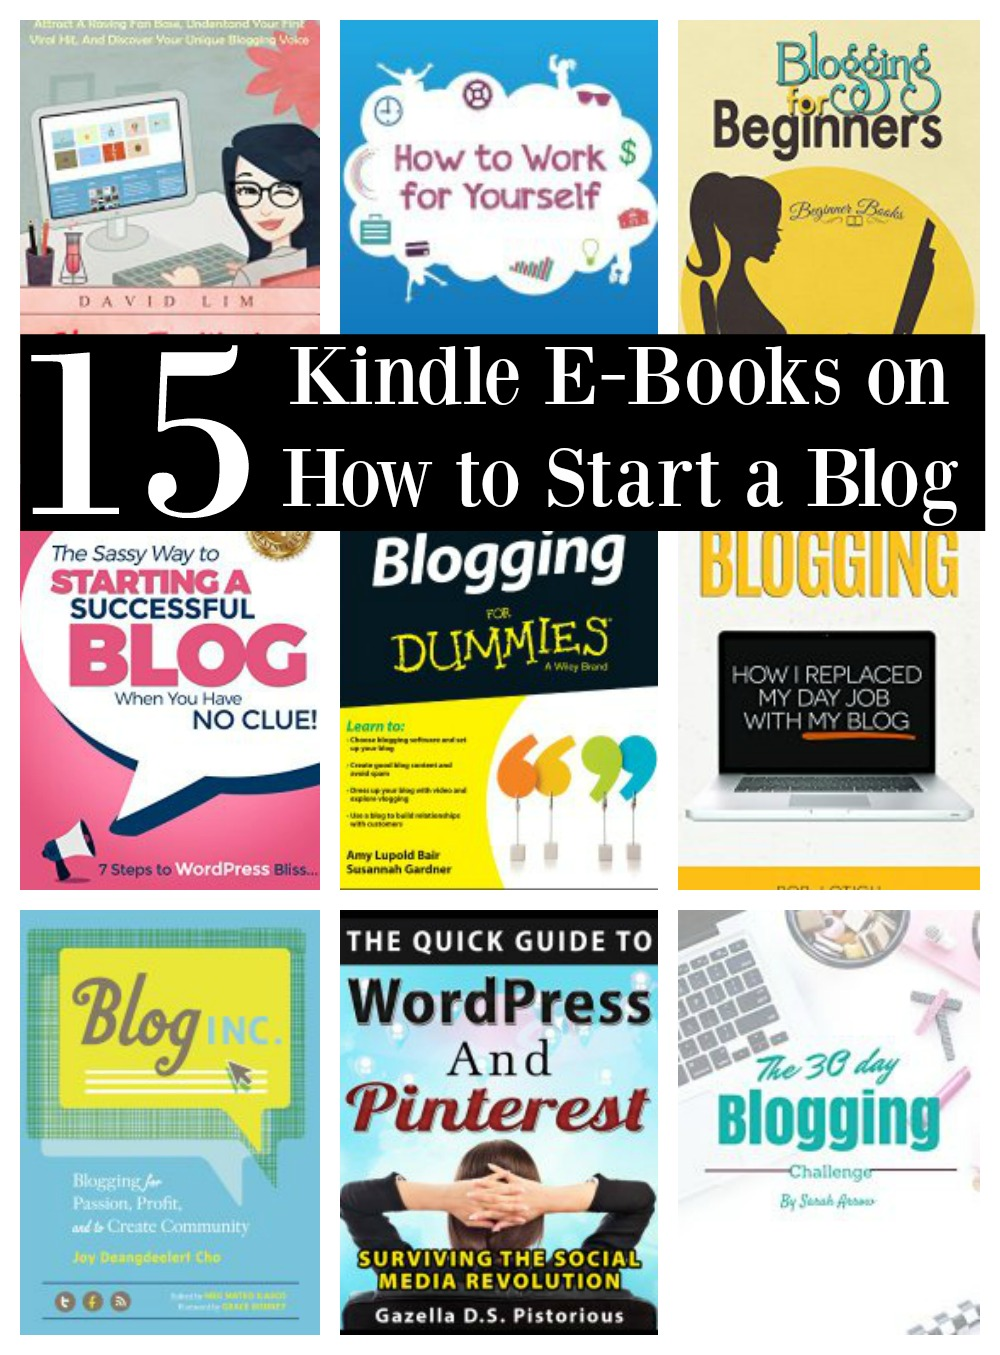 15 Kindle E-Books on How to Start a Blog